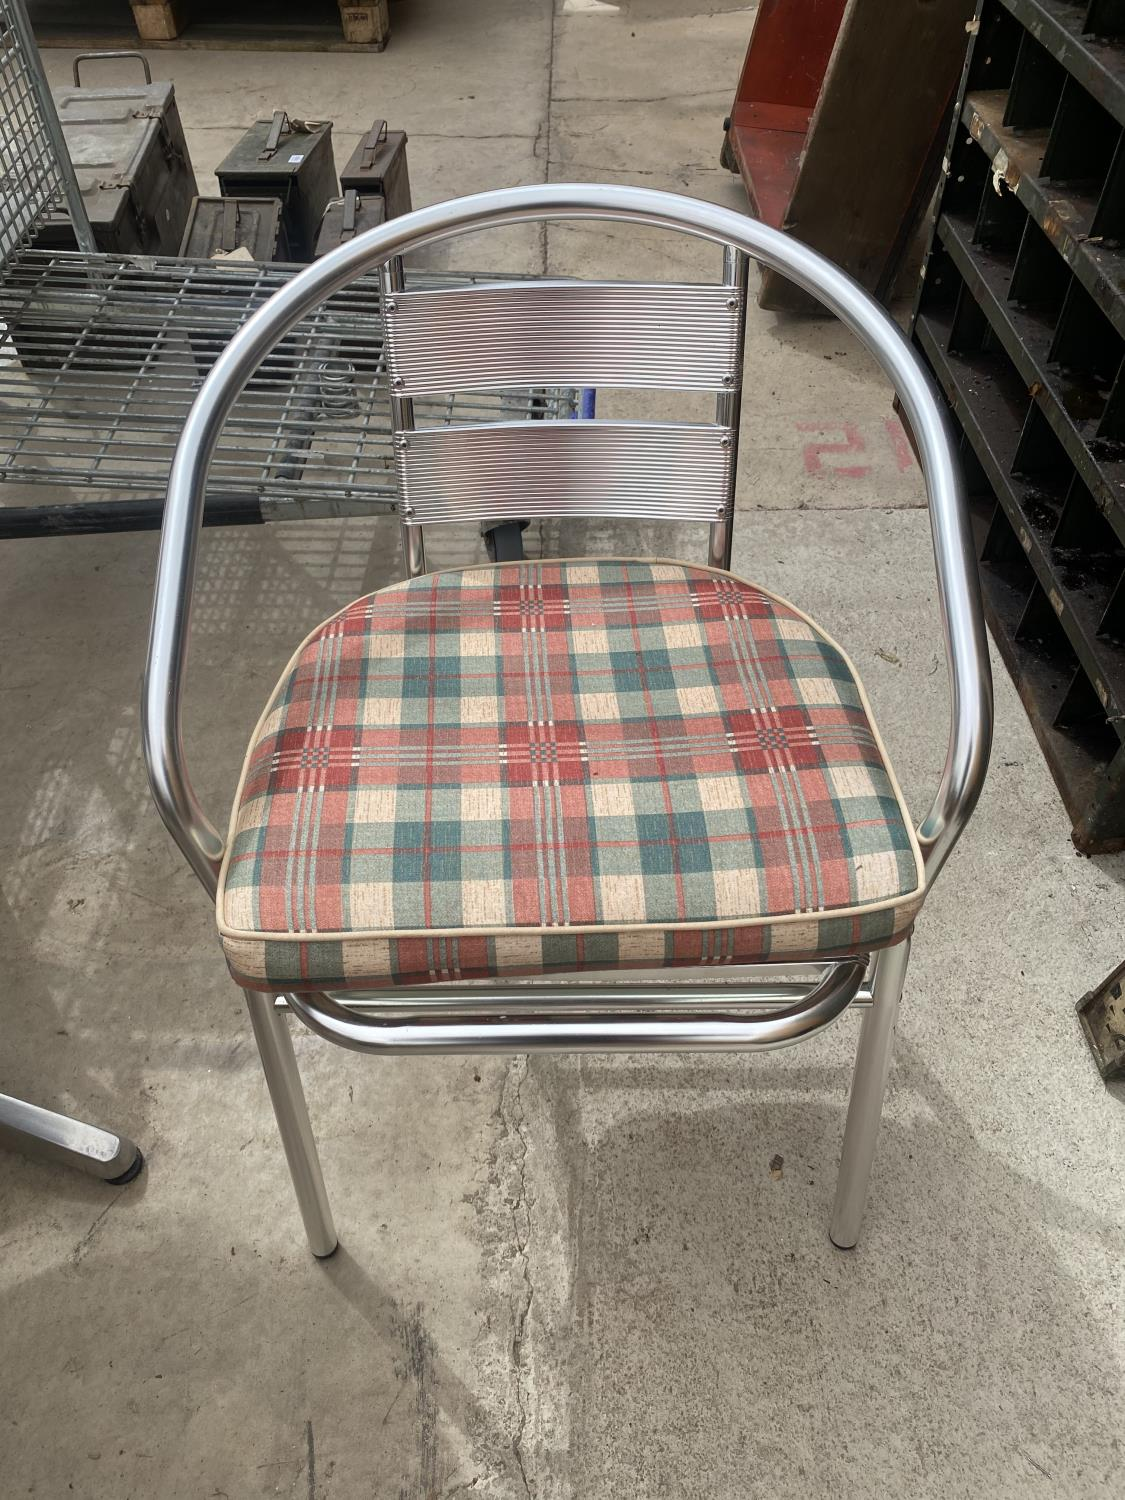 A STAINLESS STEEL BISTRO SET WITH ROUND TABLE AND FOUR CHAIRS - Image 3 of 5